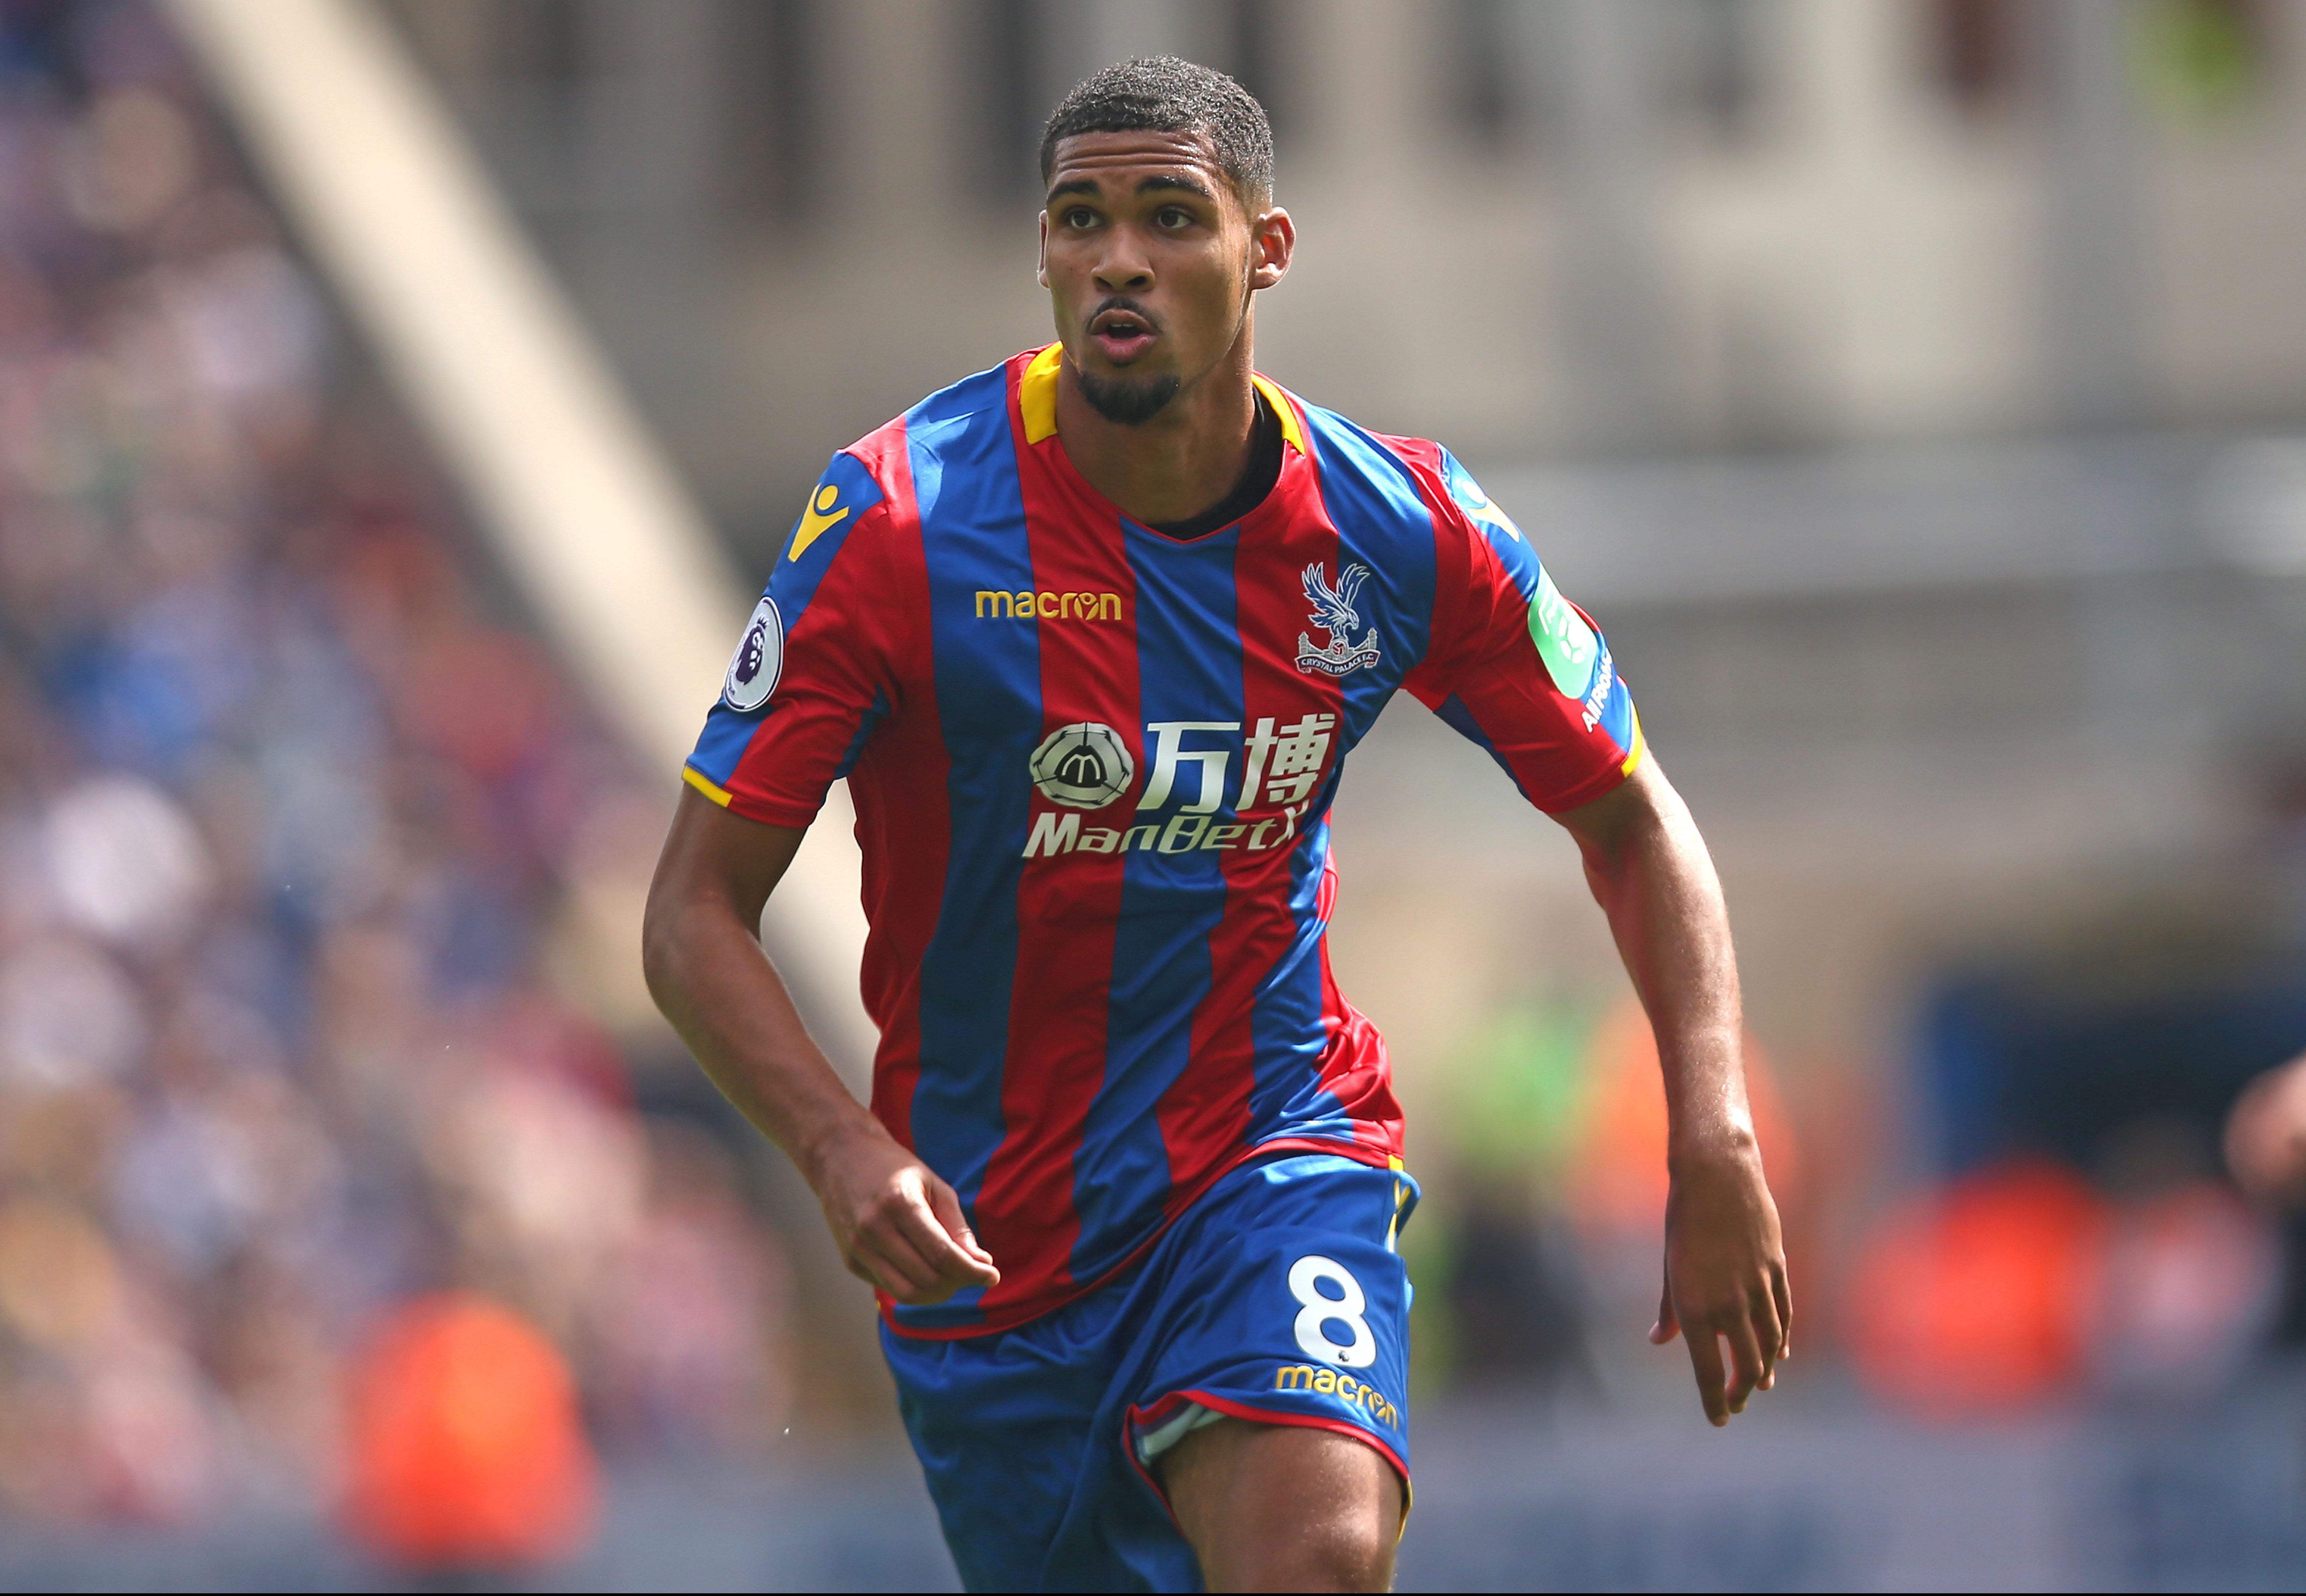 The midfielder has moved to Crystal Palace on loan this season